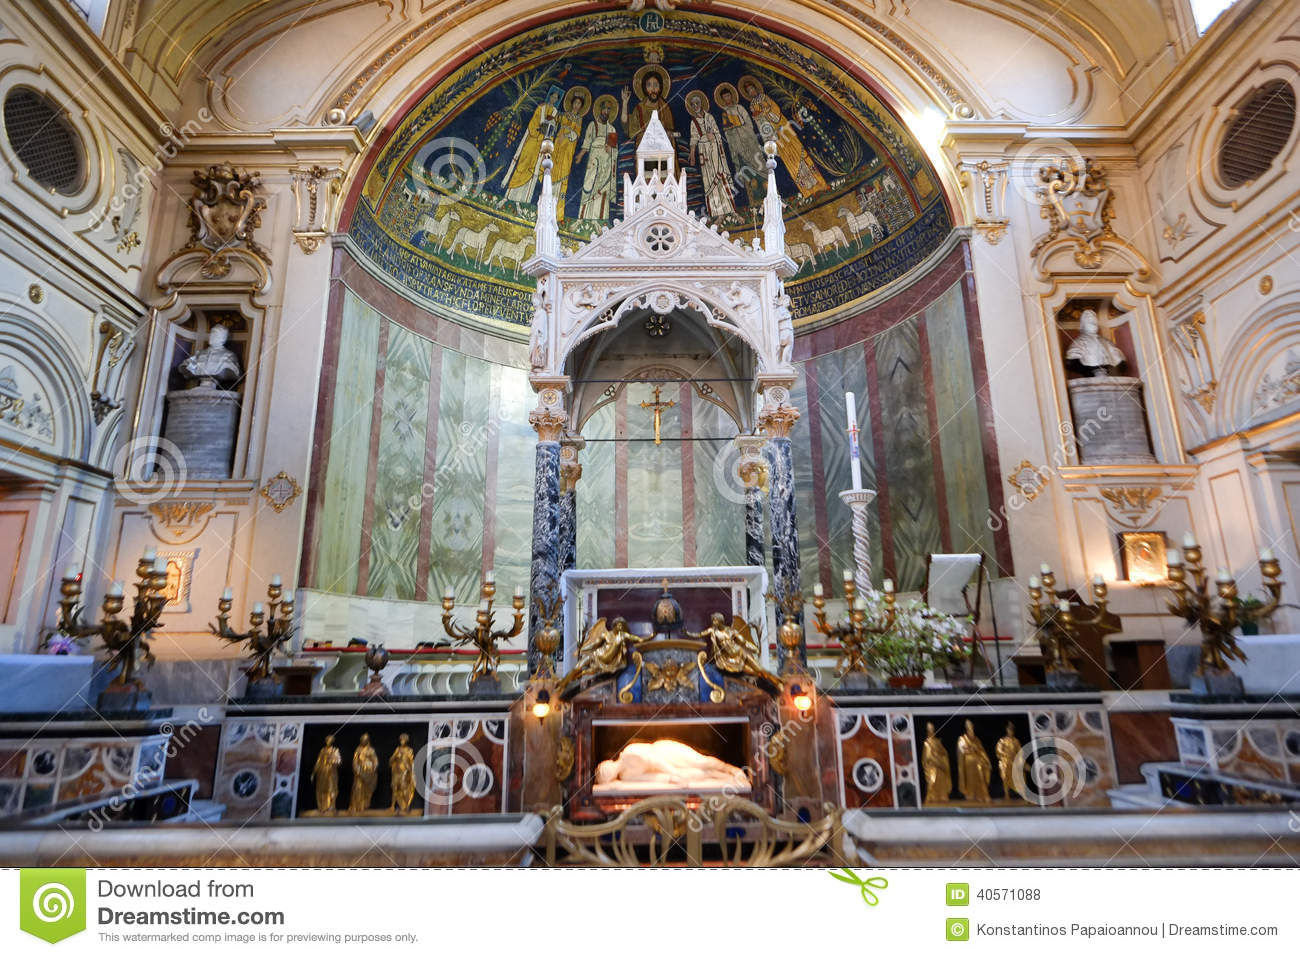 Santa Cecilia in Trastevere Rome, Santa Cecilia Church In Rome Stock Photo - Image: 40571088